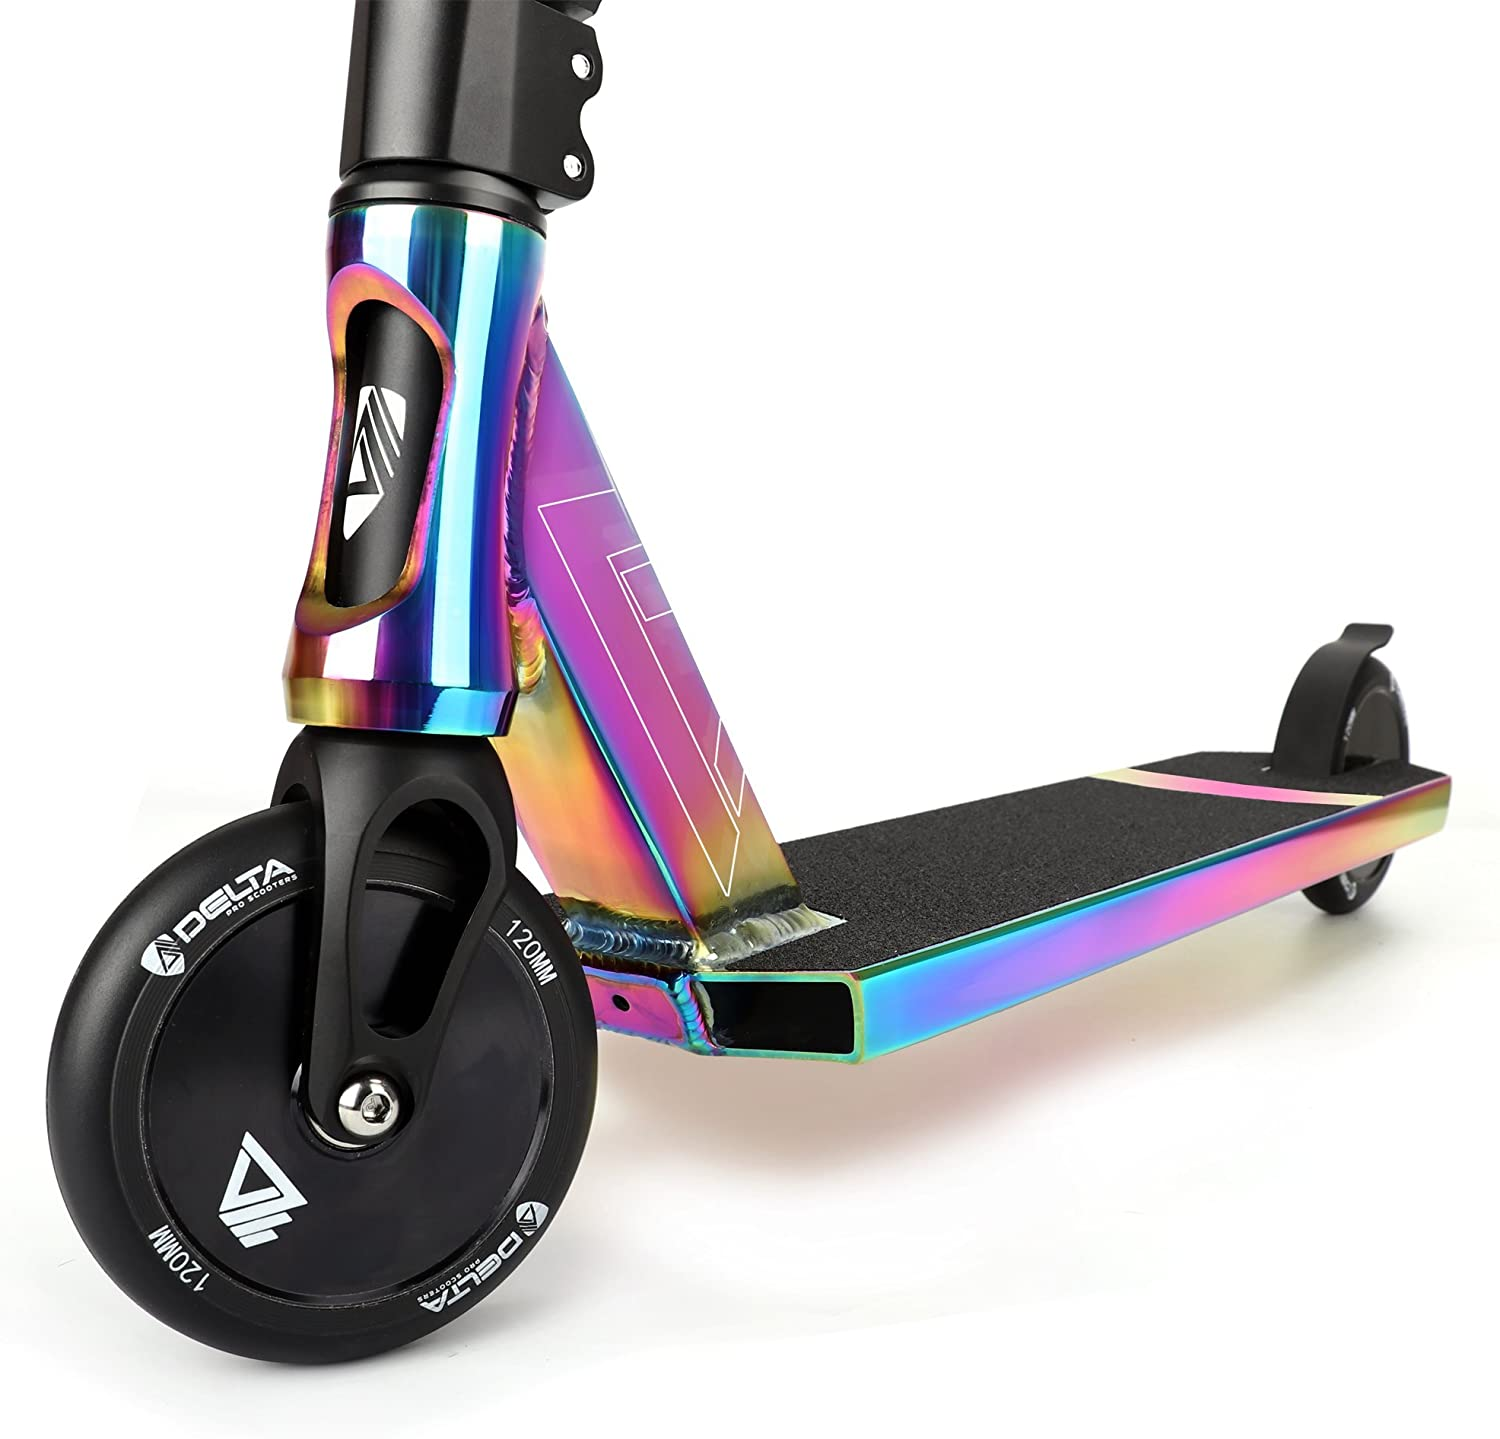 Rider designed deck perfect for street or park DELTA MACH ONE Complete Pro Scooter Re-Engineered Fork for 3x strength HIC Compression 7073 Aircraft grade aluminum Integrated Headset TWO sets of 120mm Wheels